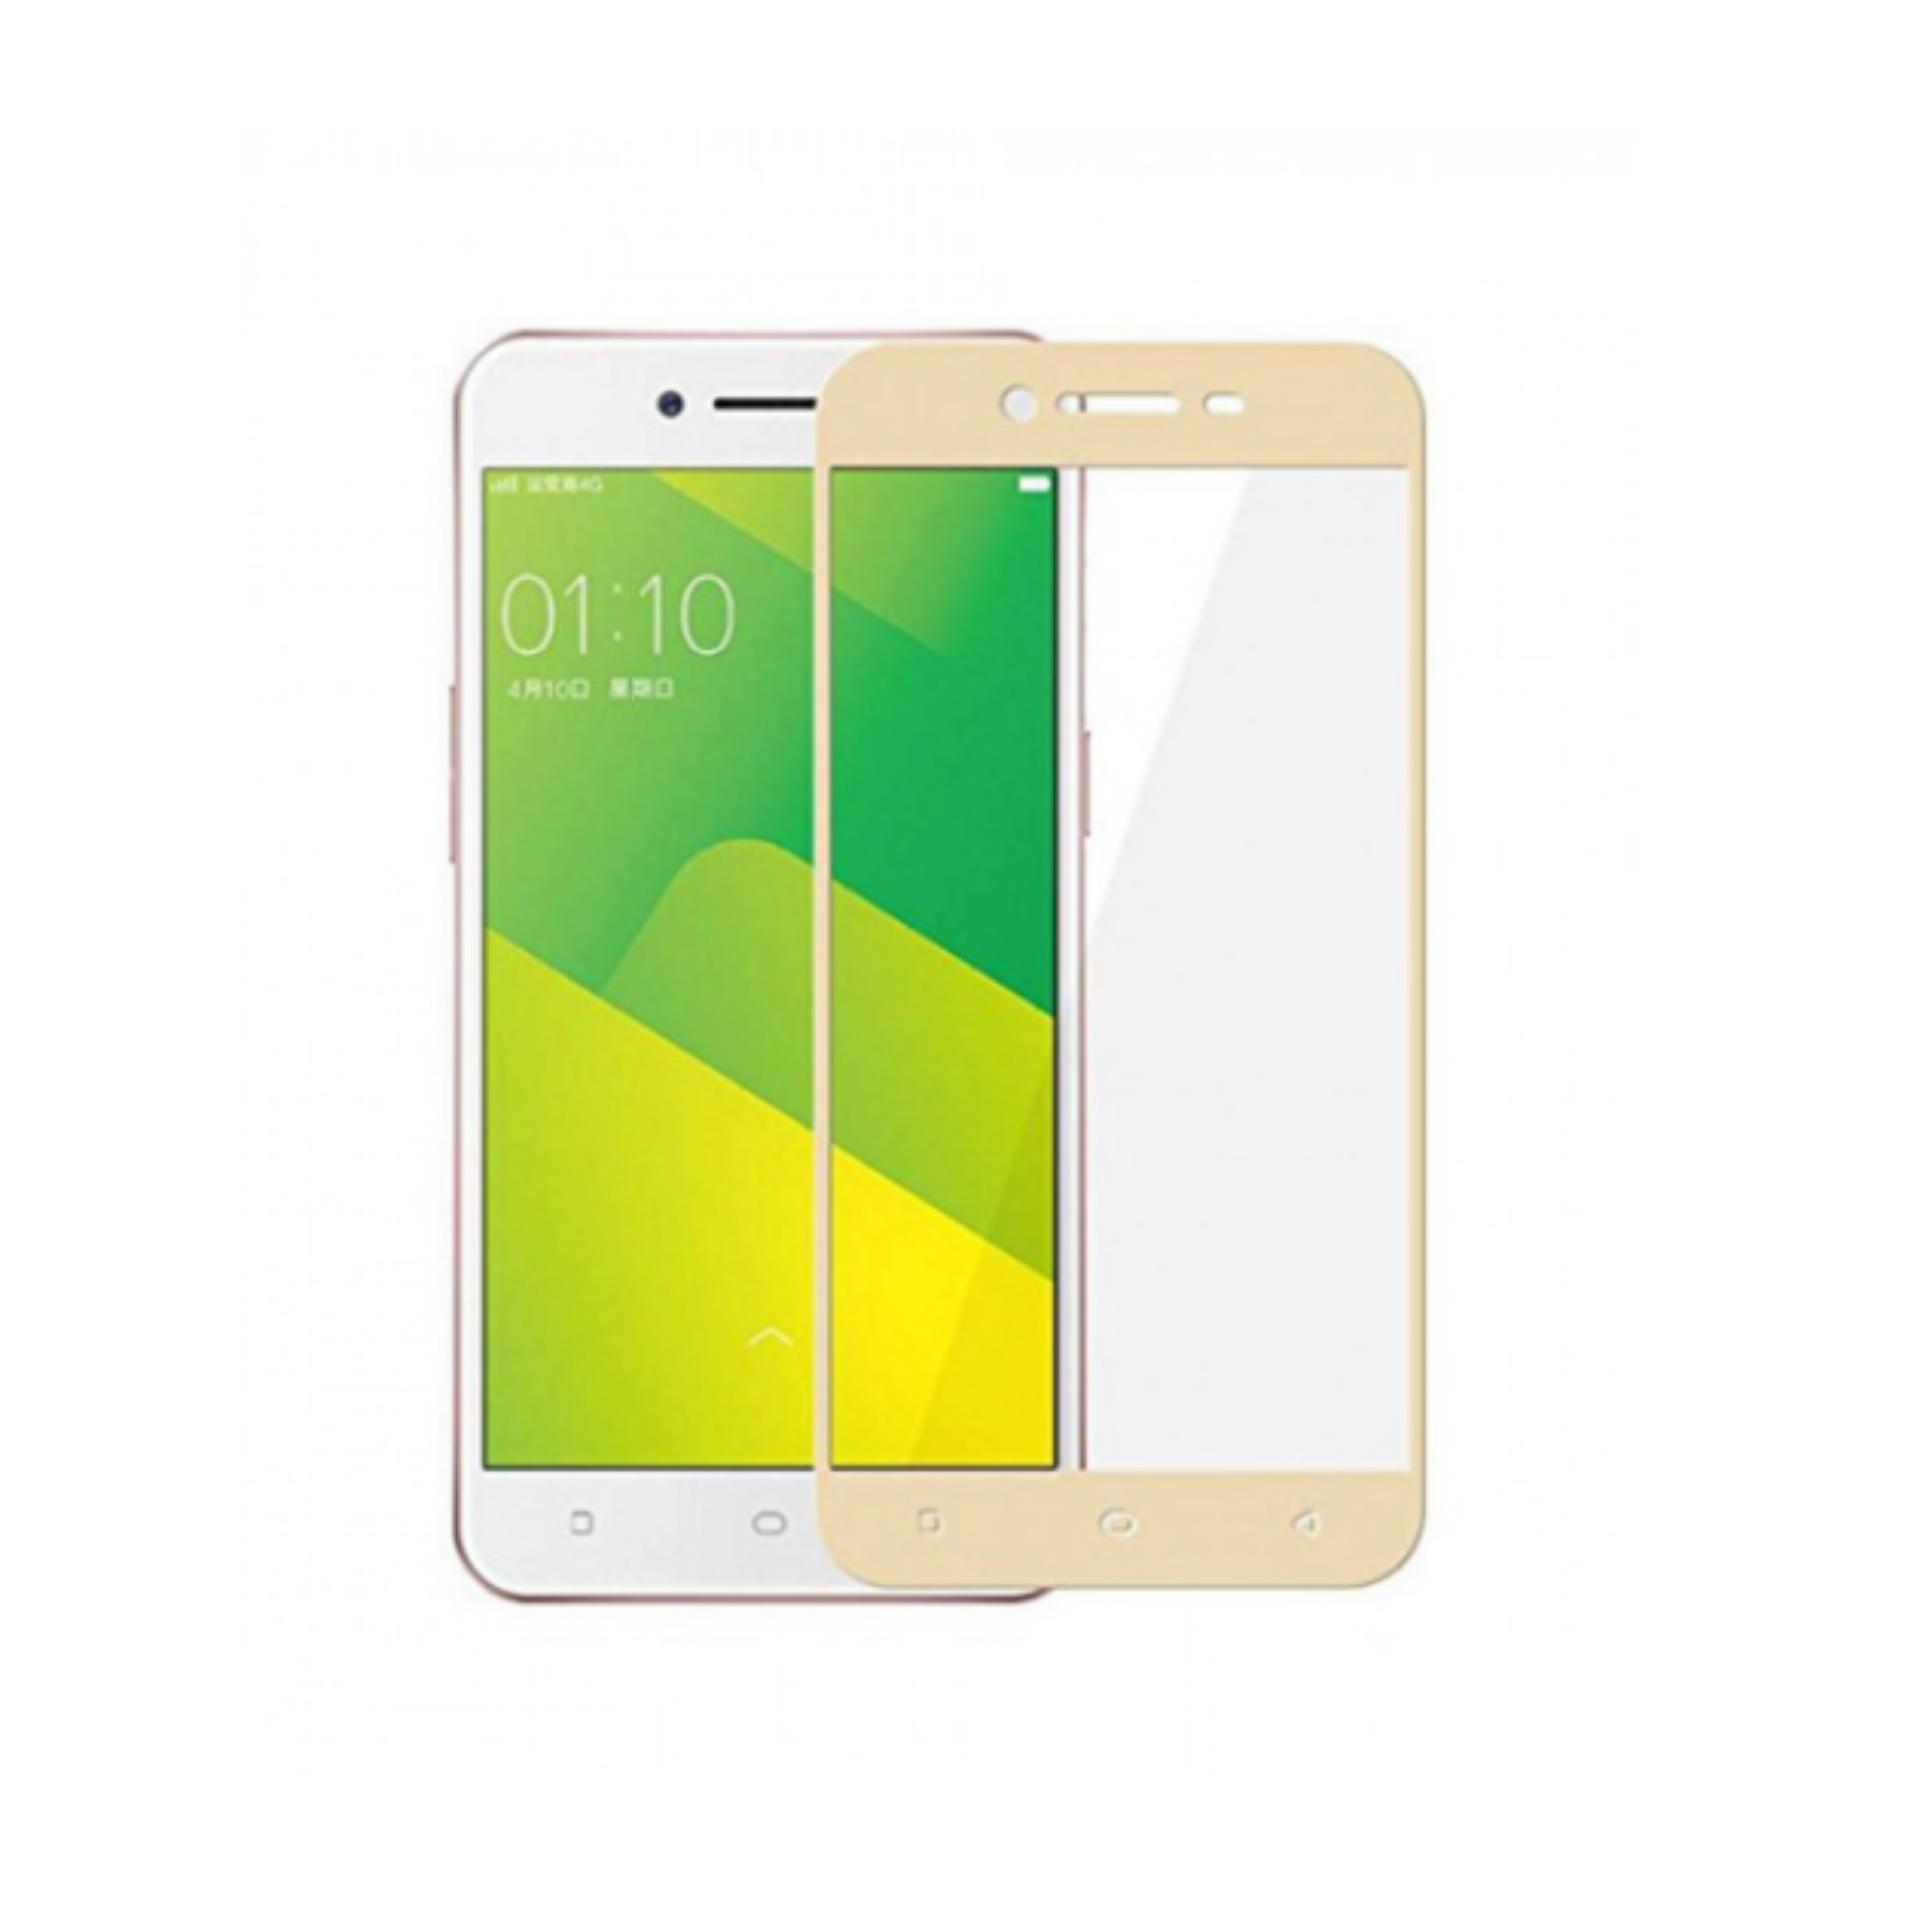 Buy Sell Cheapest Oppo A71 Hd Best Quality Product Deals 3gb 32gb Black Garansi Resmi Cicilan 0 Hitam 9star Tempered Glass For Full Screen 25d List Emas